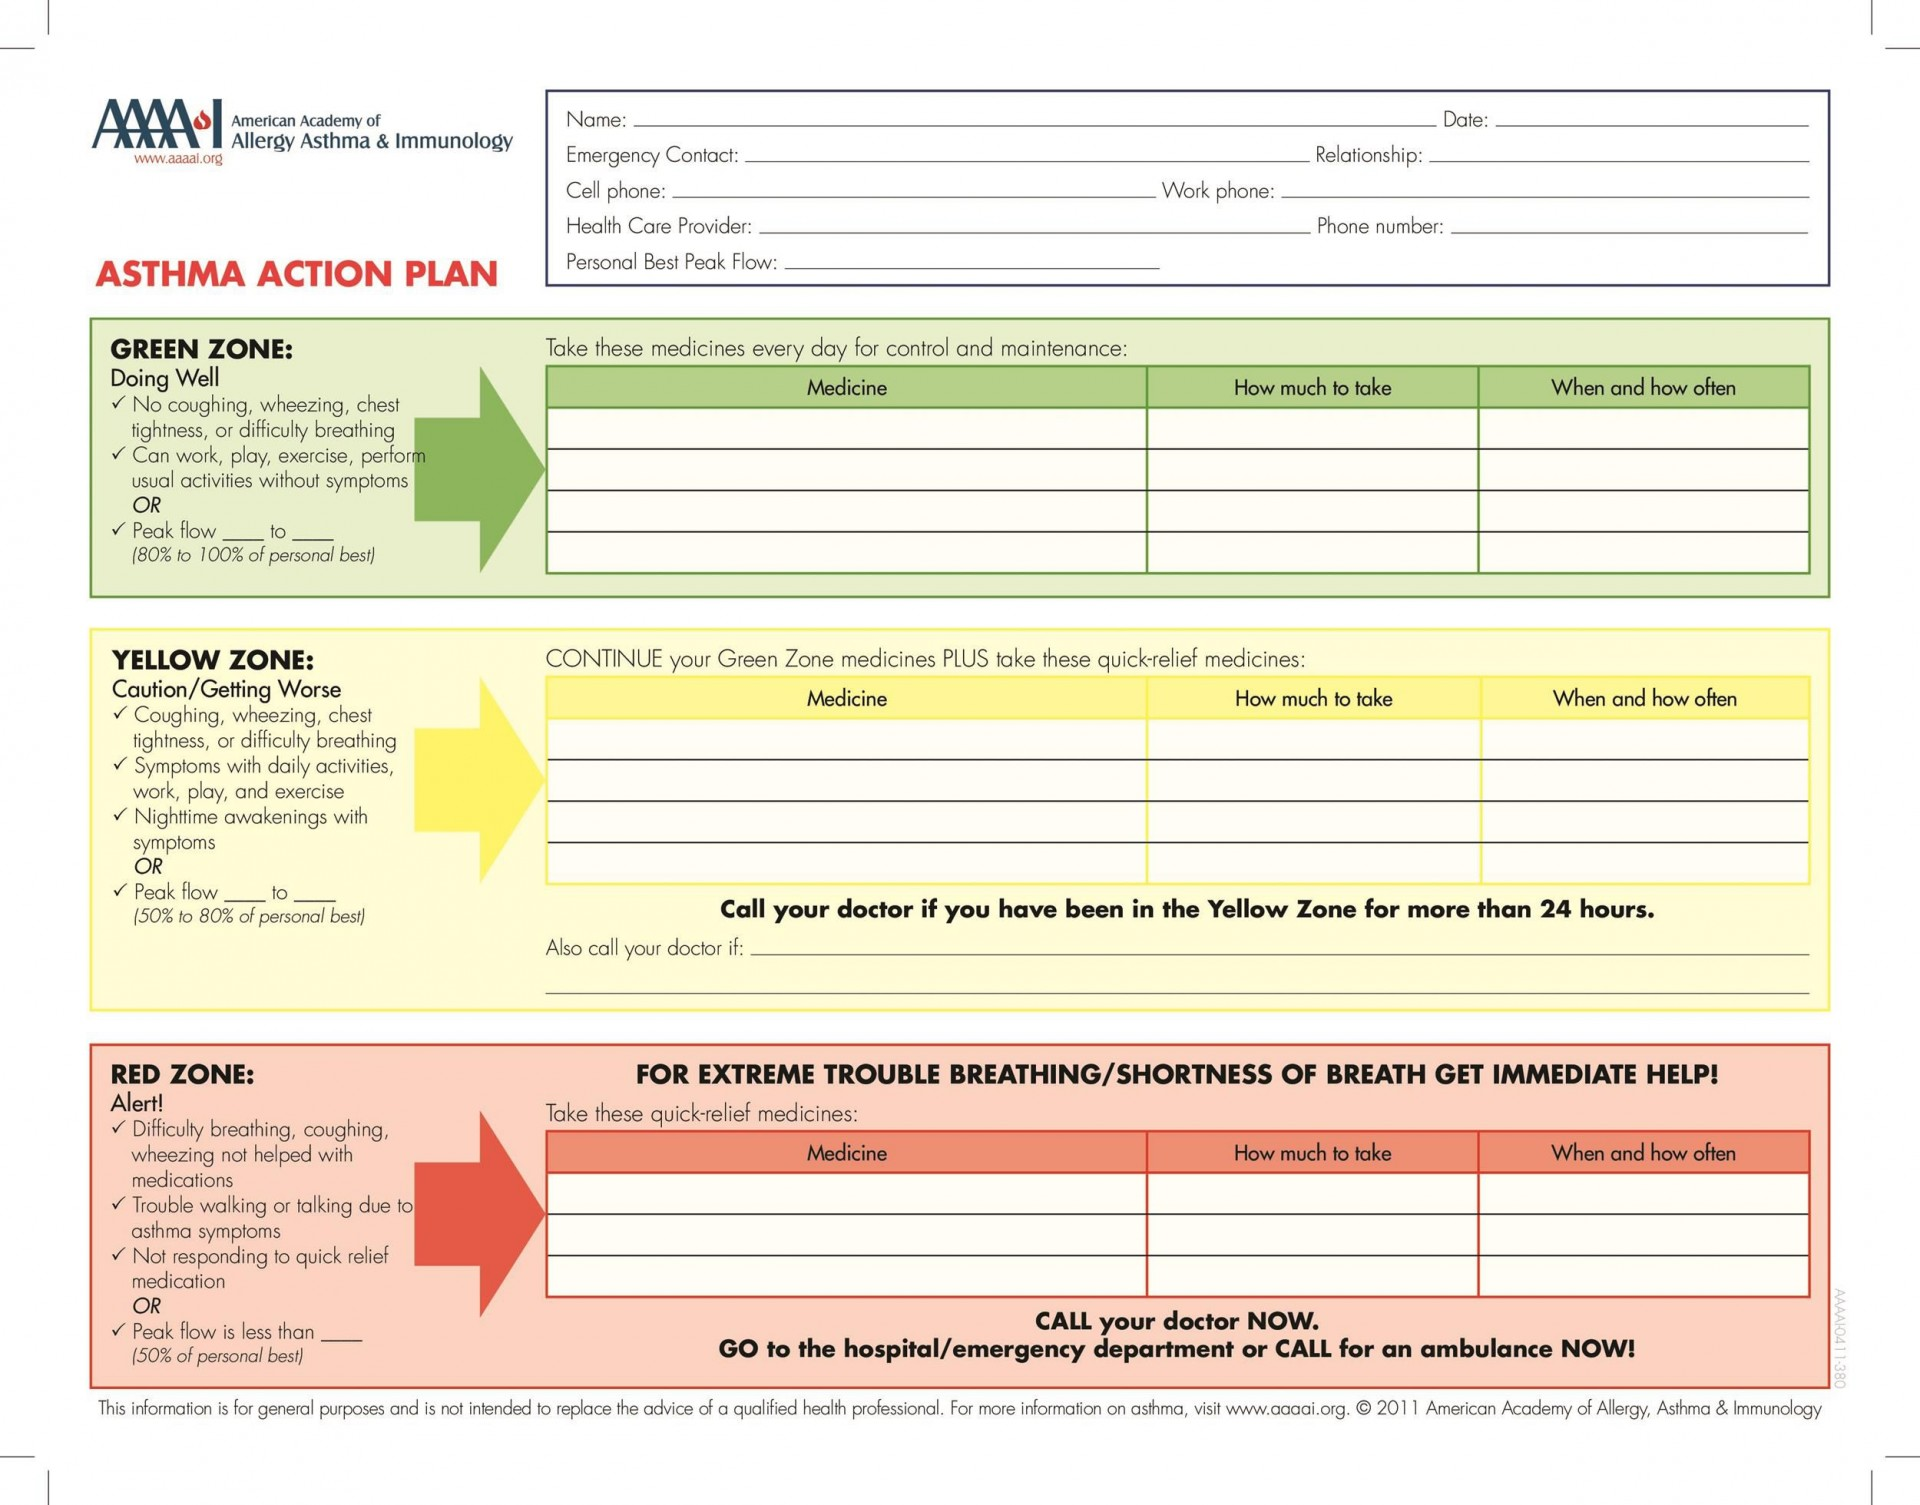 003 Fearsome Smart Action Plan Template High Def  Download Nh Example Free1920